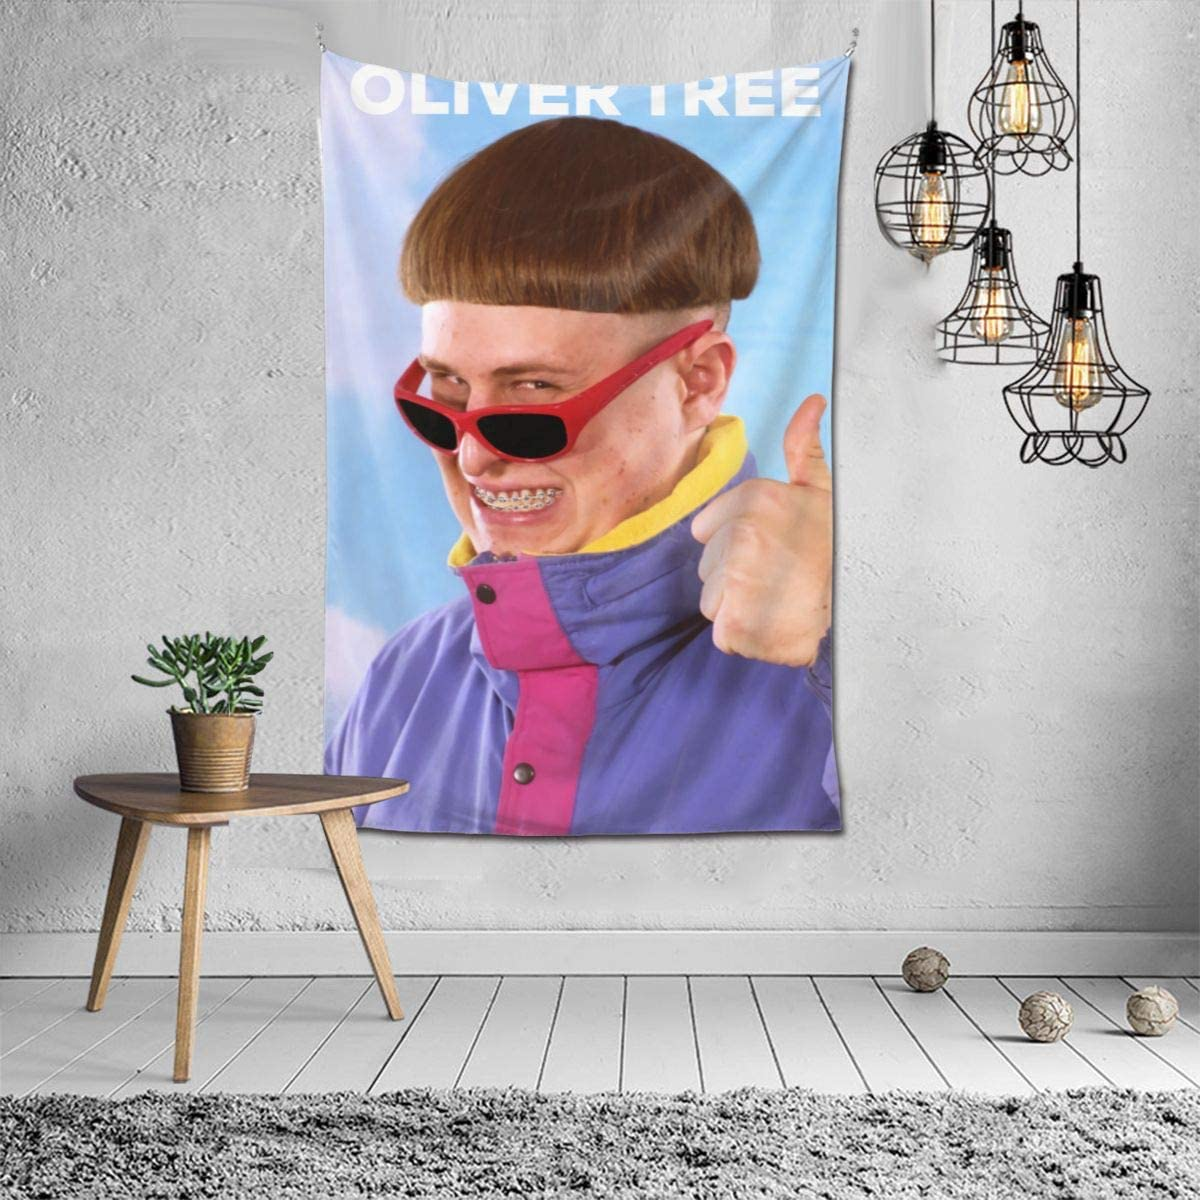 MarthaPOrtiz 付与 最新号掲載アイテム Oliver Tree Tapestry Exquisite H Wall